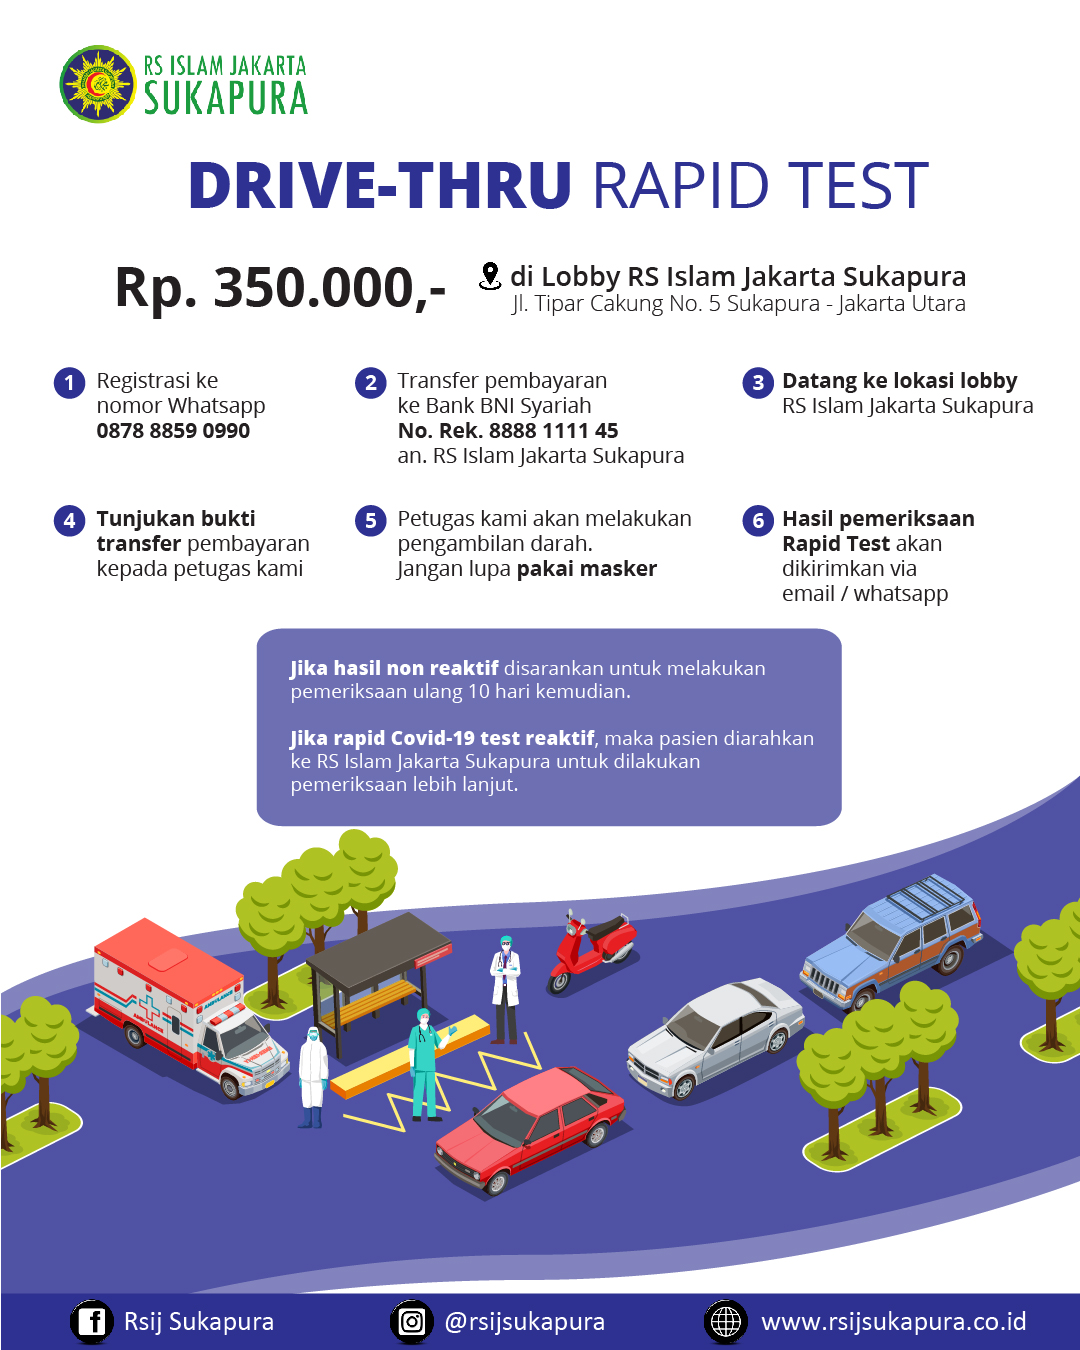 Drive thru rapid test